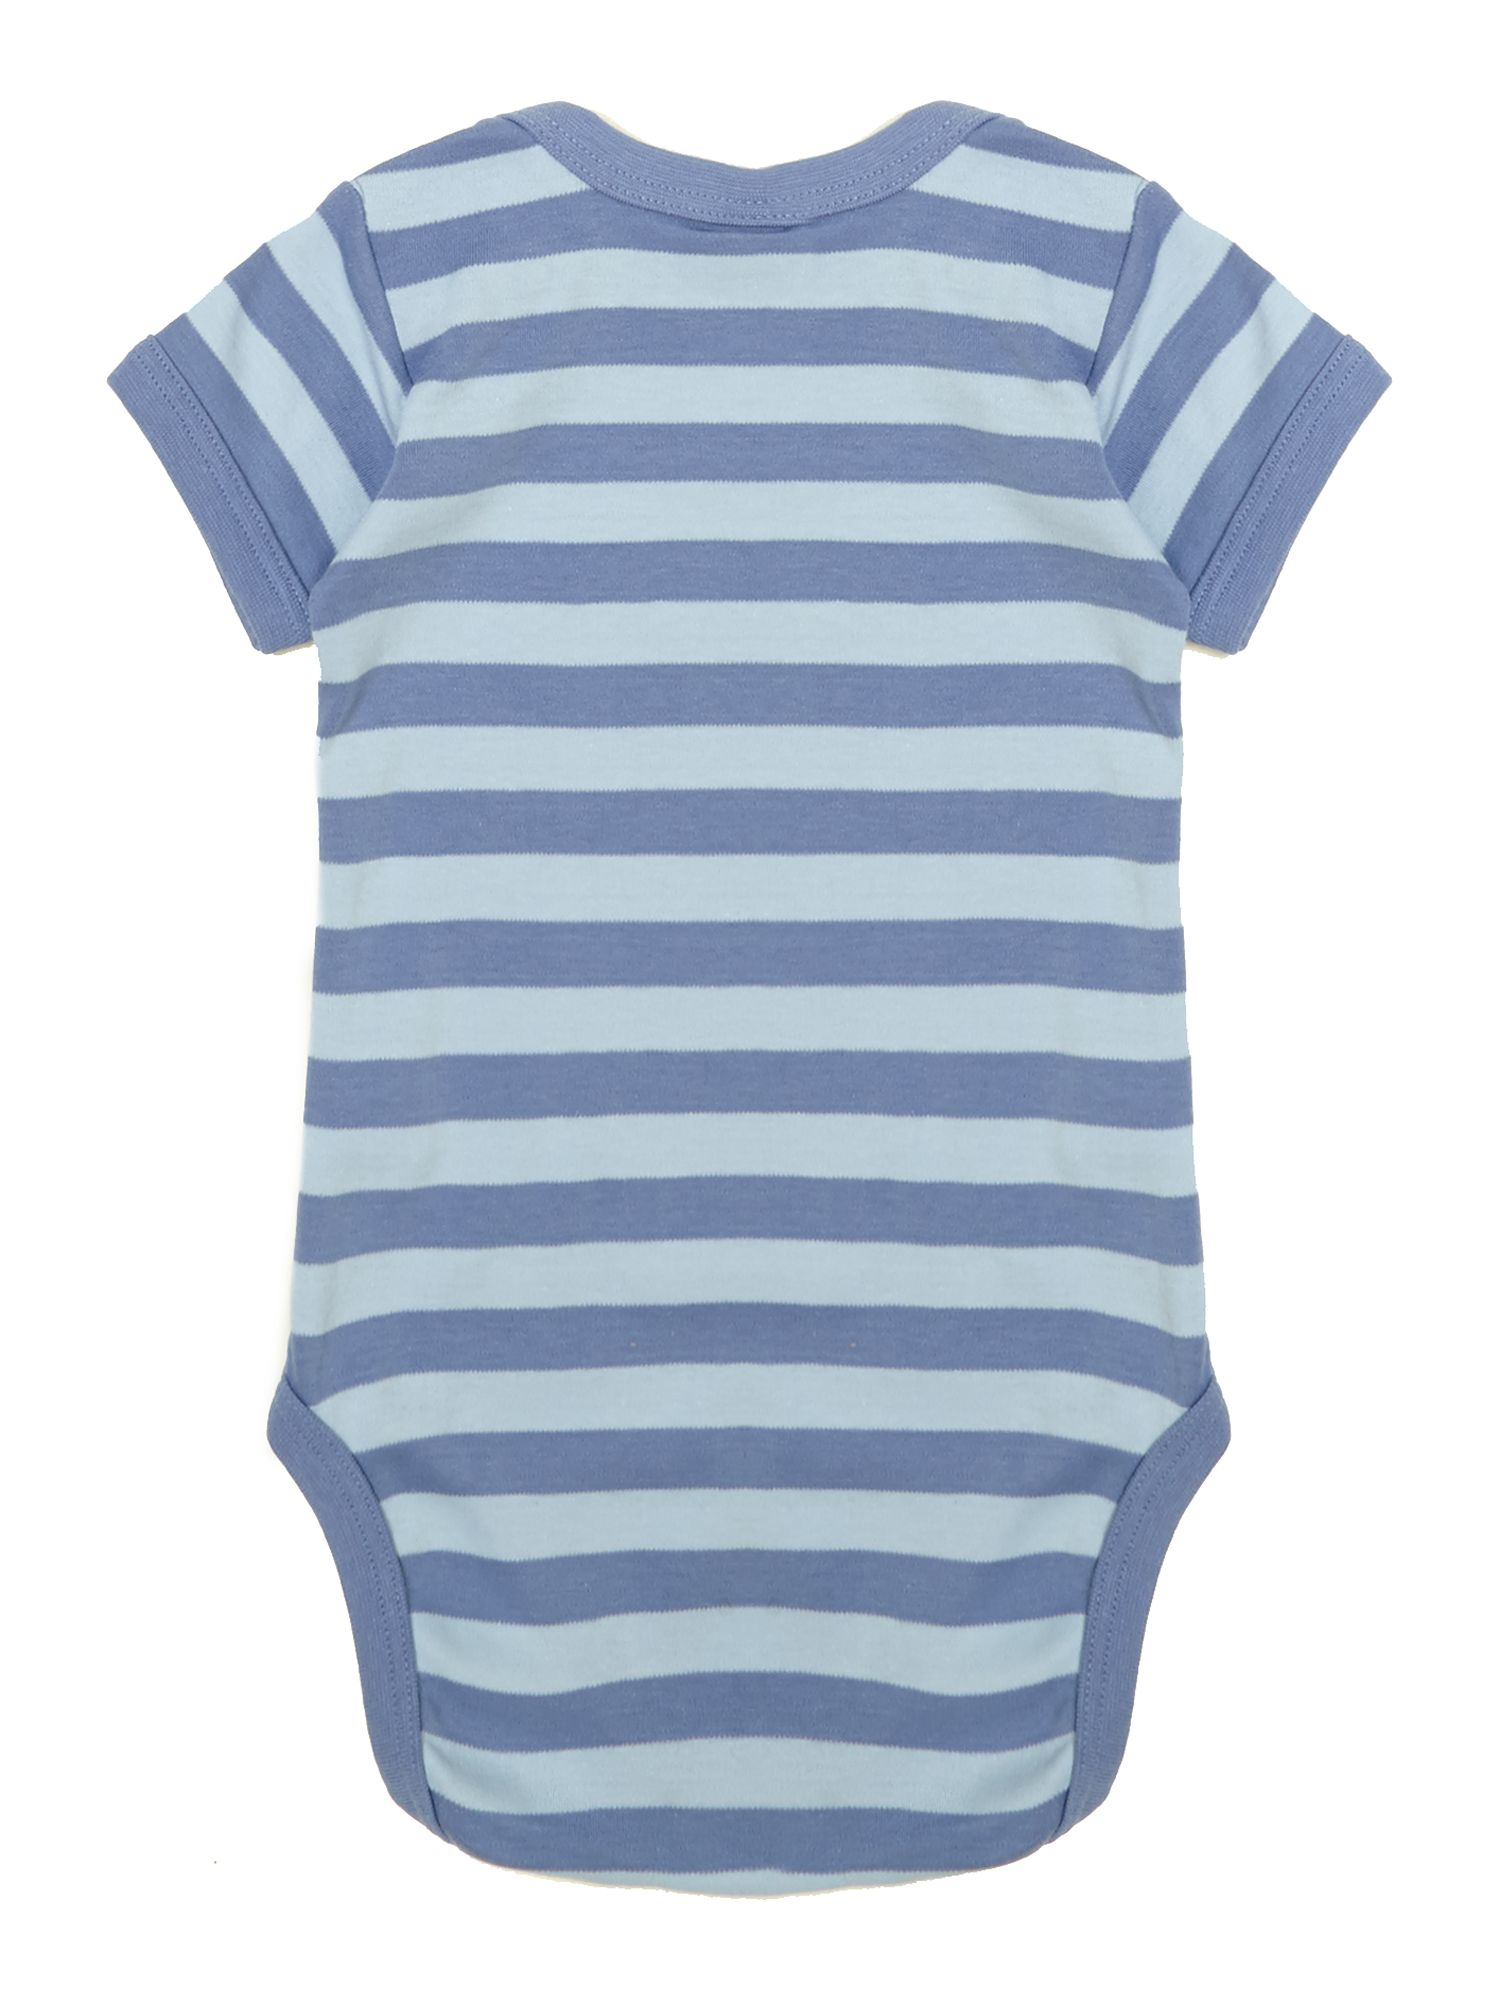 Baby cotton striped bodysuit short sleeved